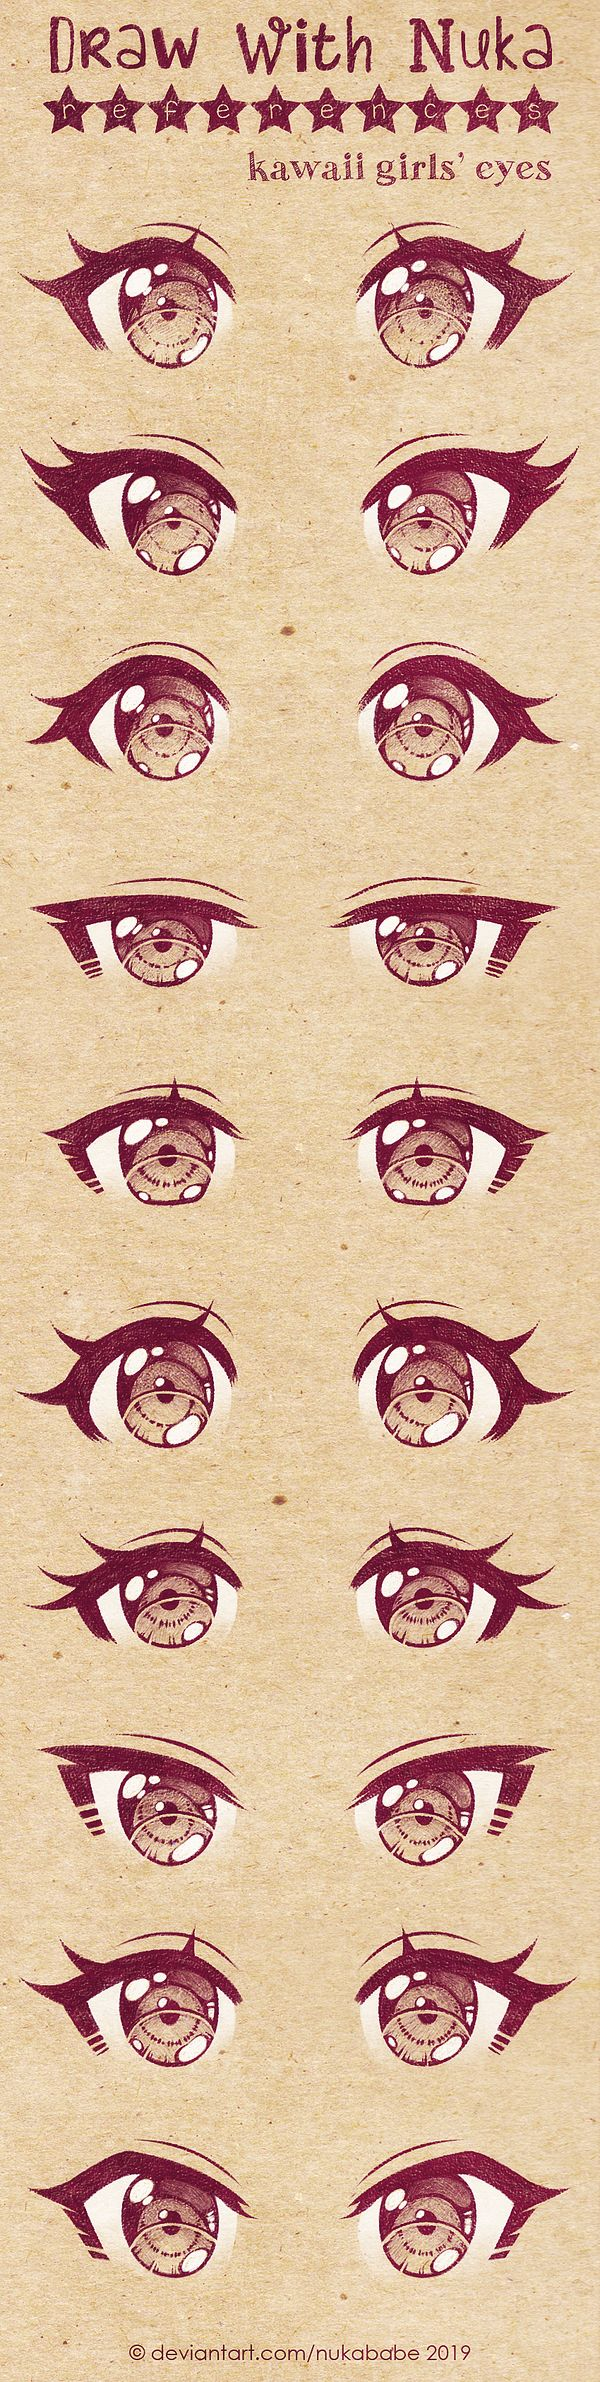 Anime Female Eyes Reference Google Search Anime Drawings Sketches Anime Drawings Tutorials Anime Eye Drawing